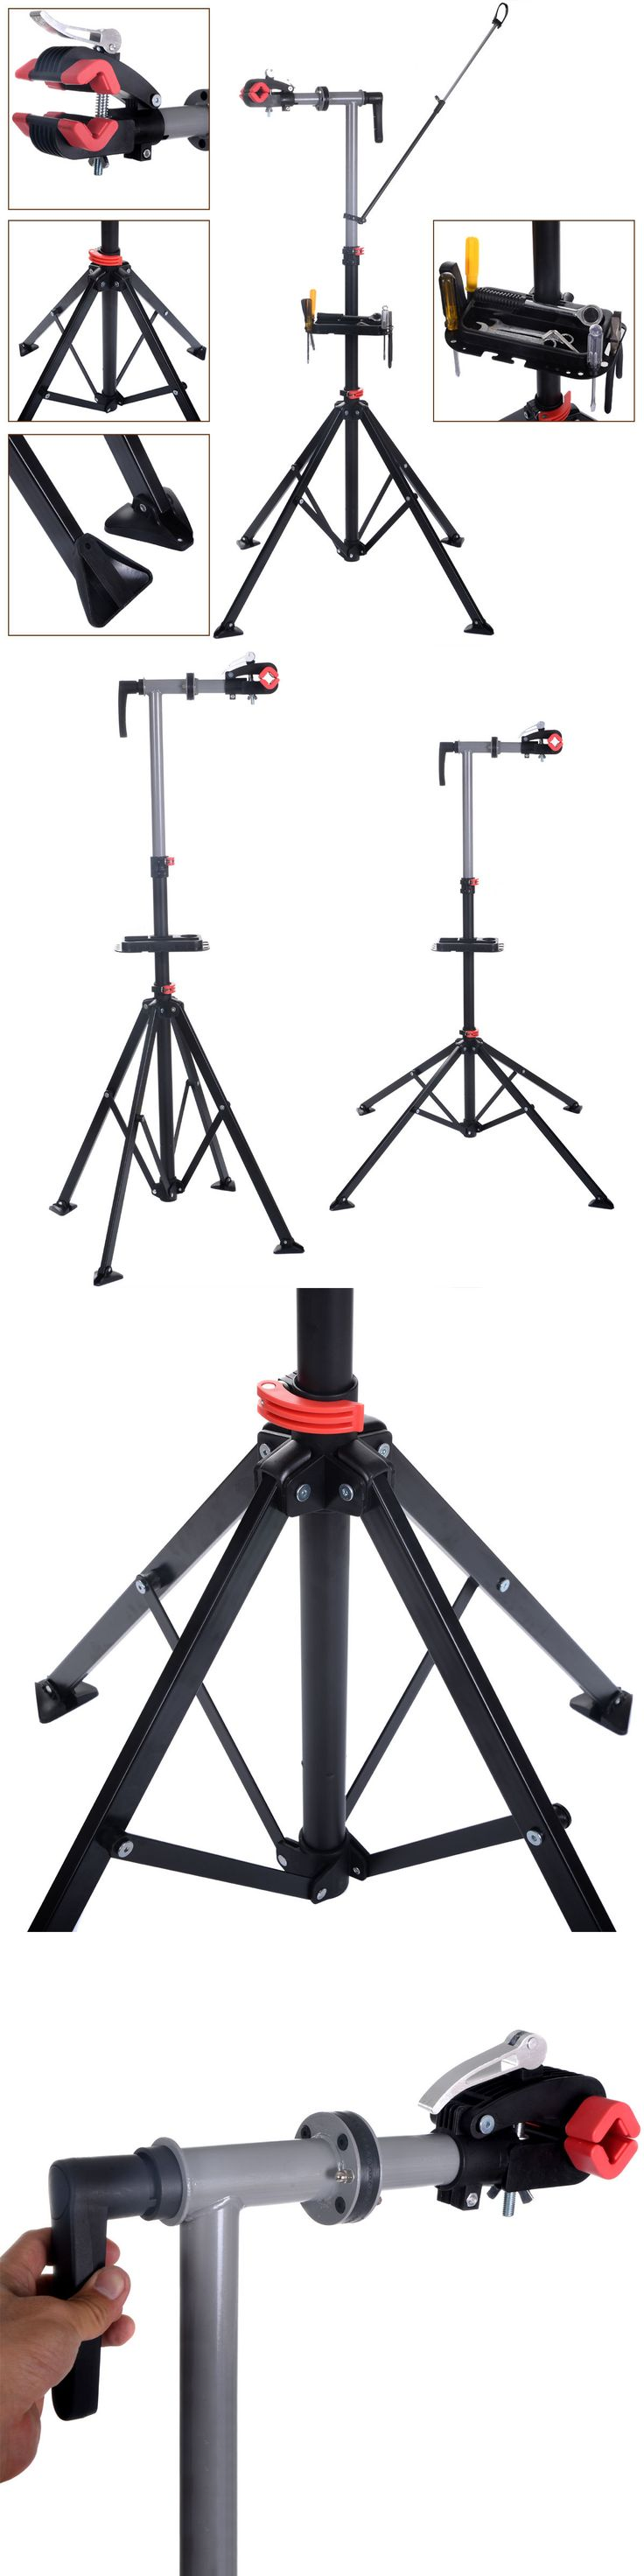 Other Bike Maintenance and Tools 177848: Pro Bike 41To 75Repair Stand Adjustable W/Telescopic Arm Bicycle Cycle Rack BUY IT NOW ONLY: $45.99